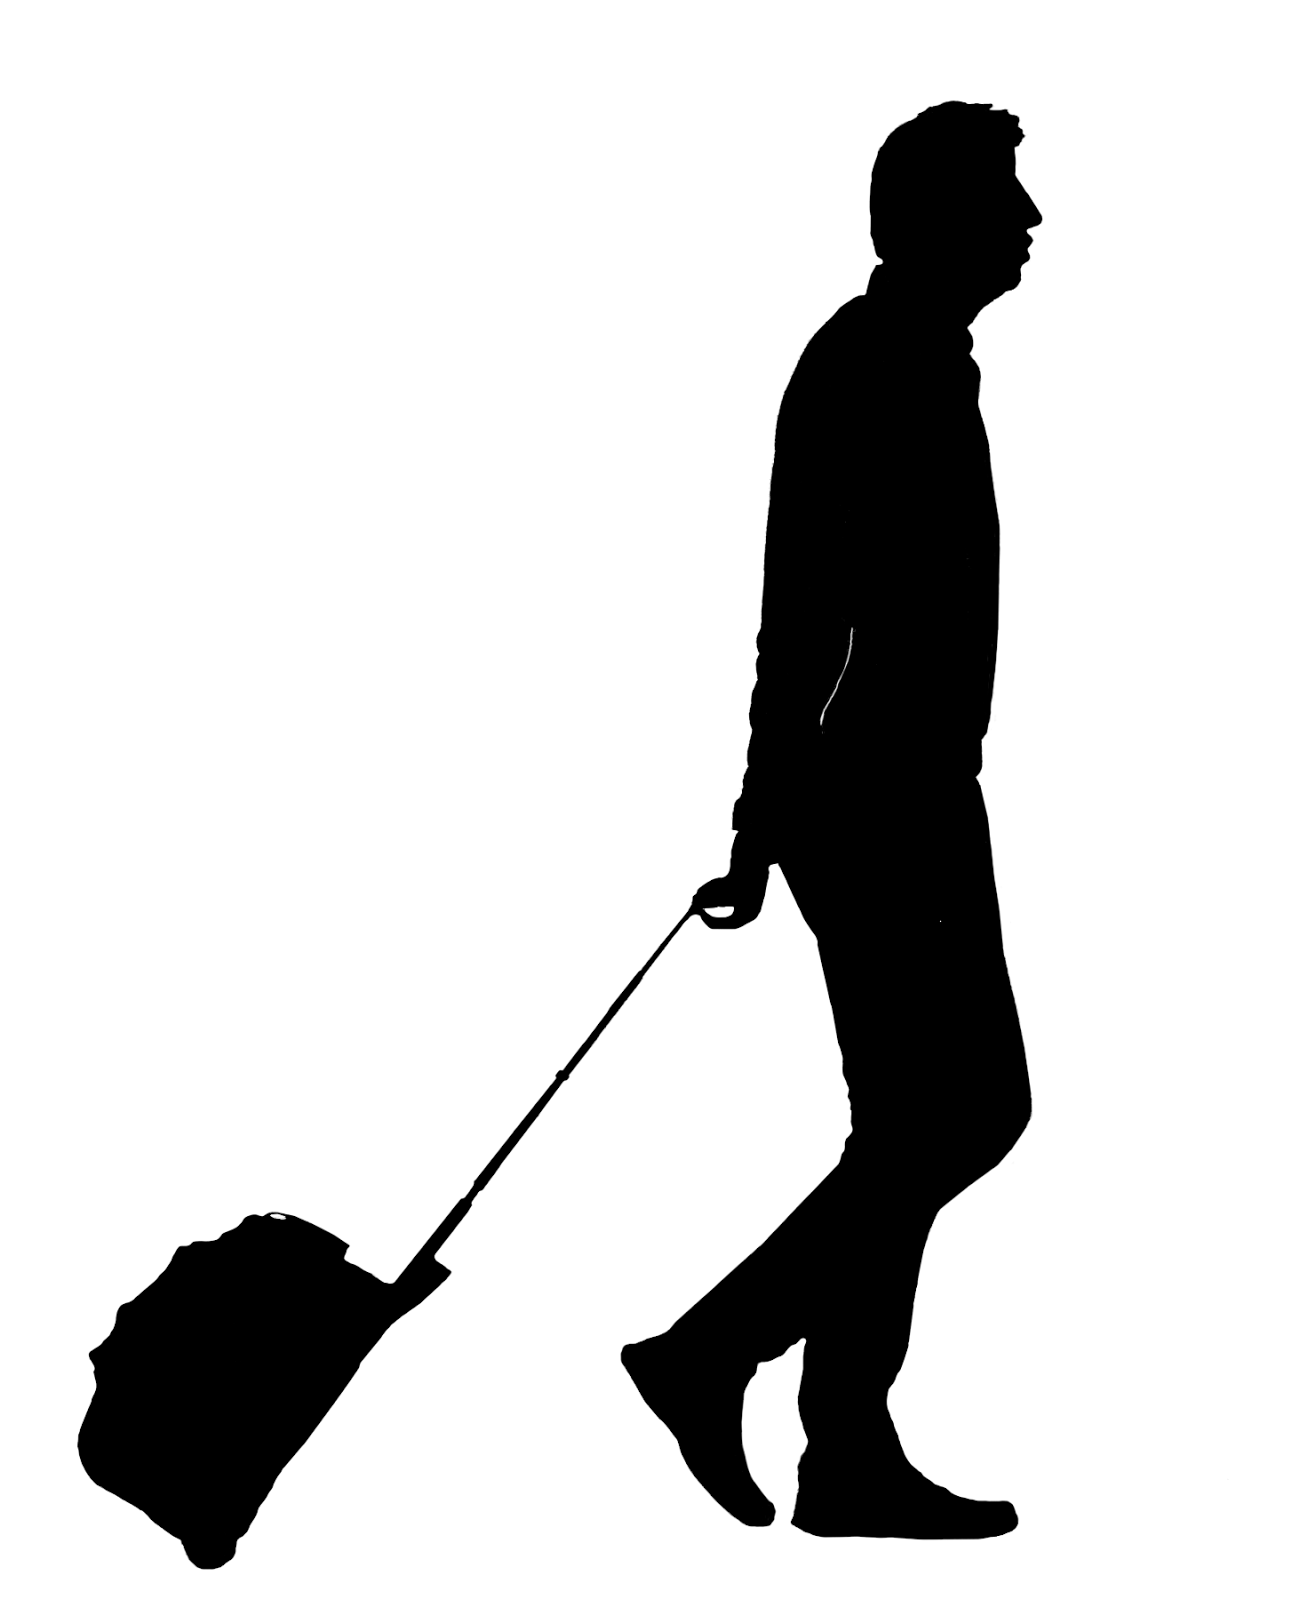 Risultati immagini per walking man with trolley logo symbol